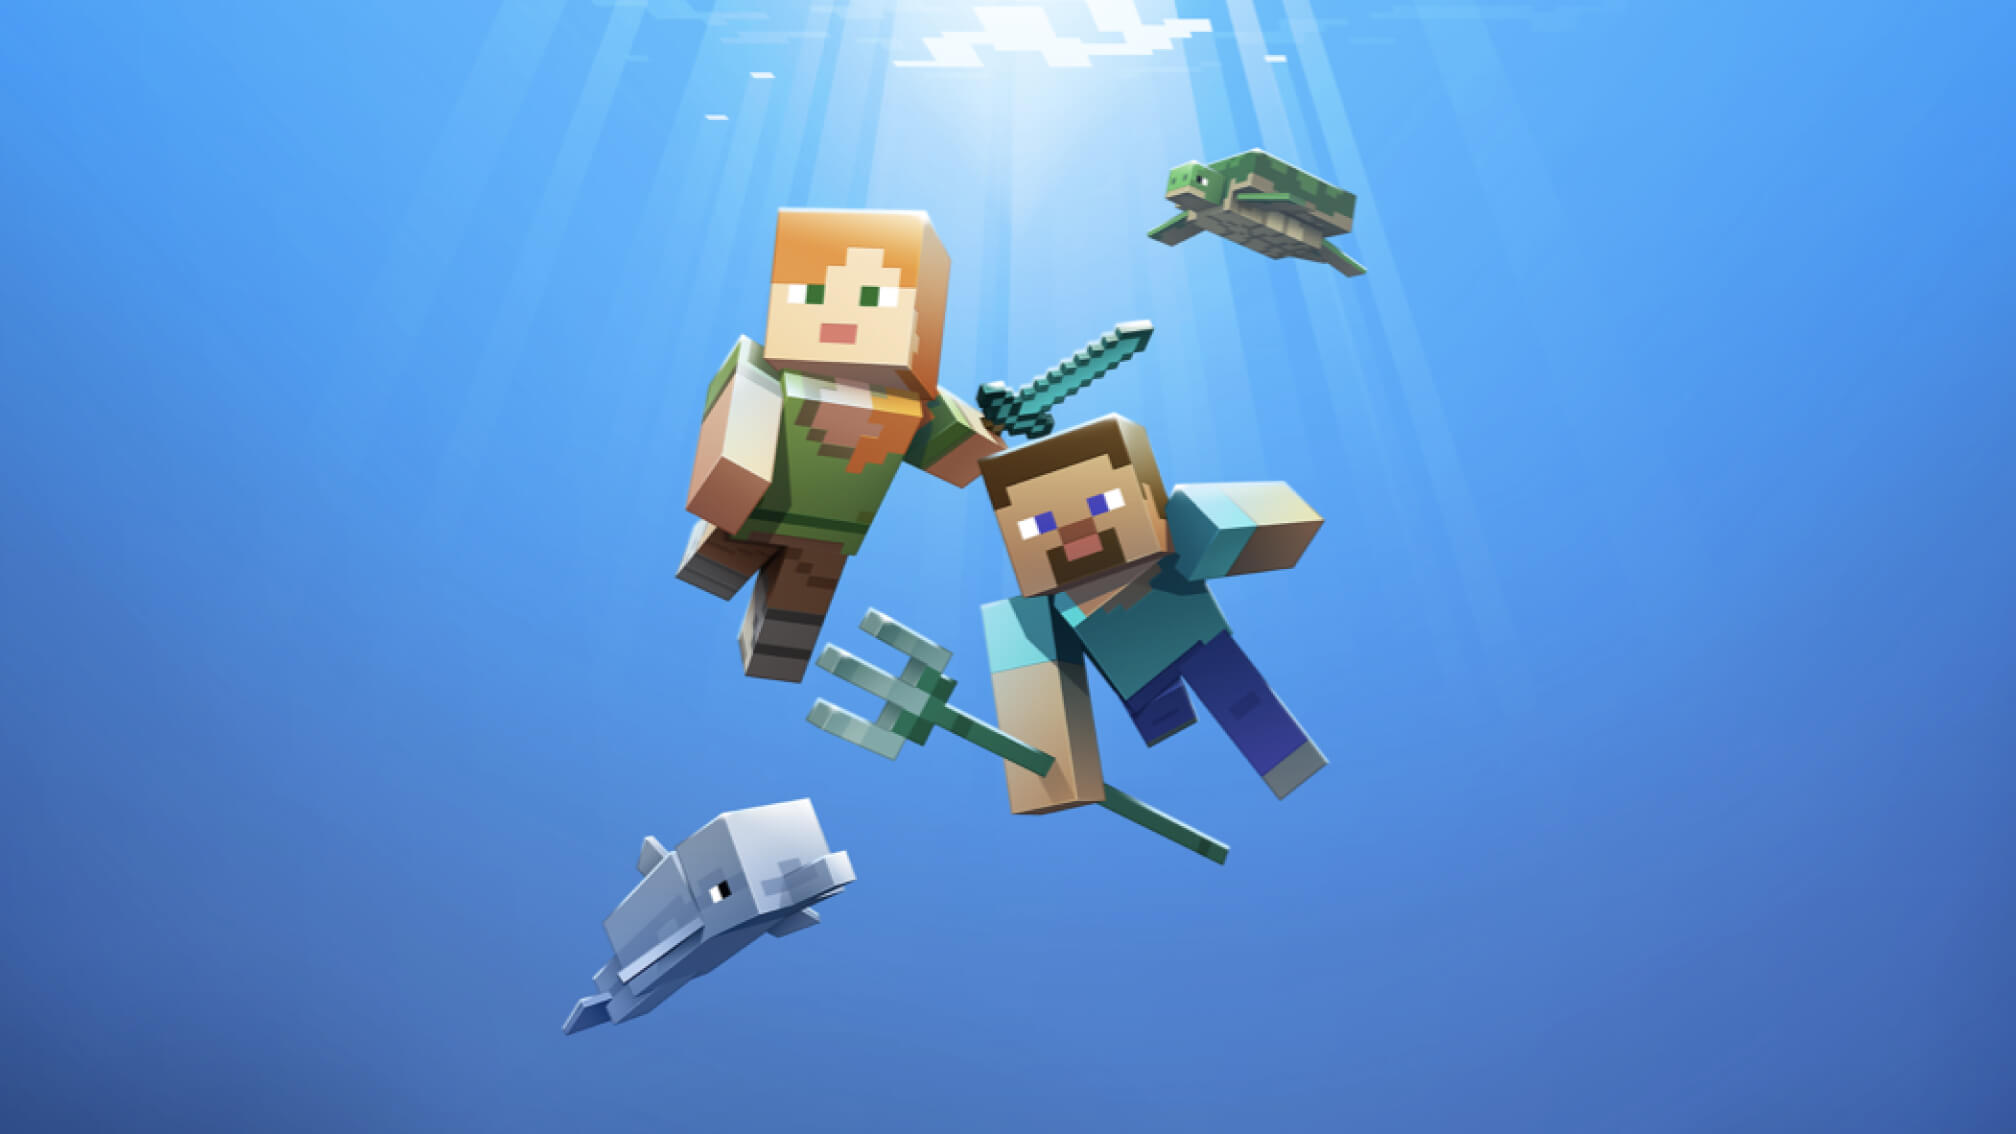 Minecraft characters playing in the ocean